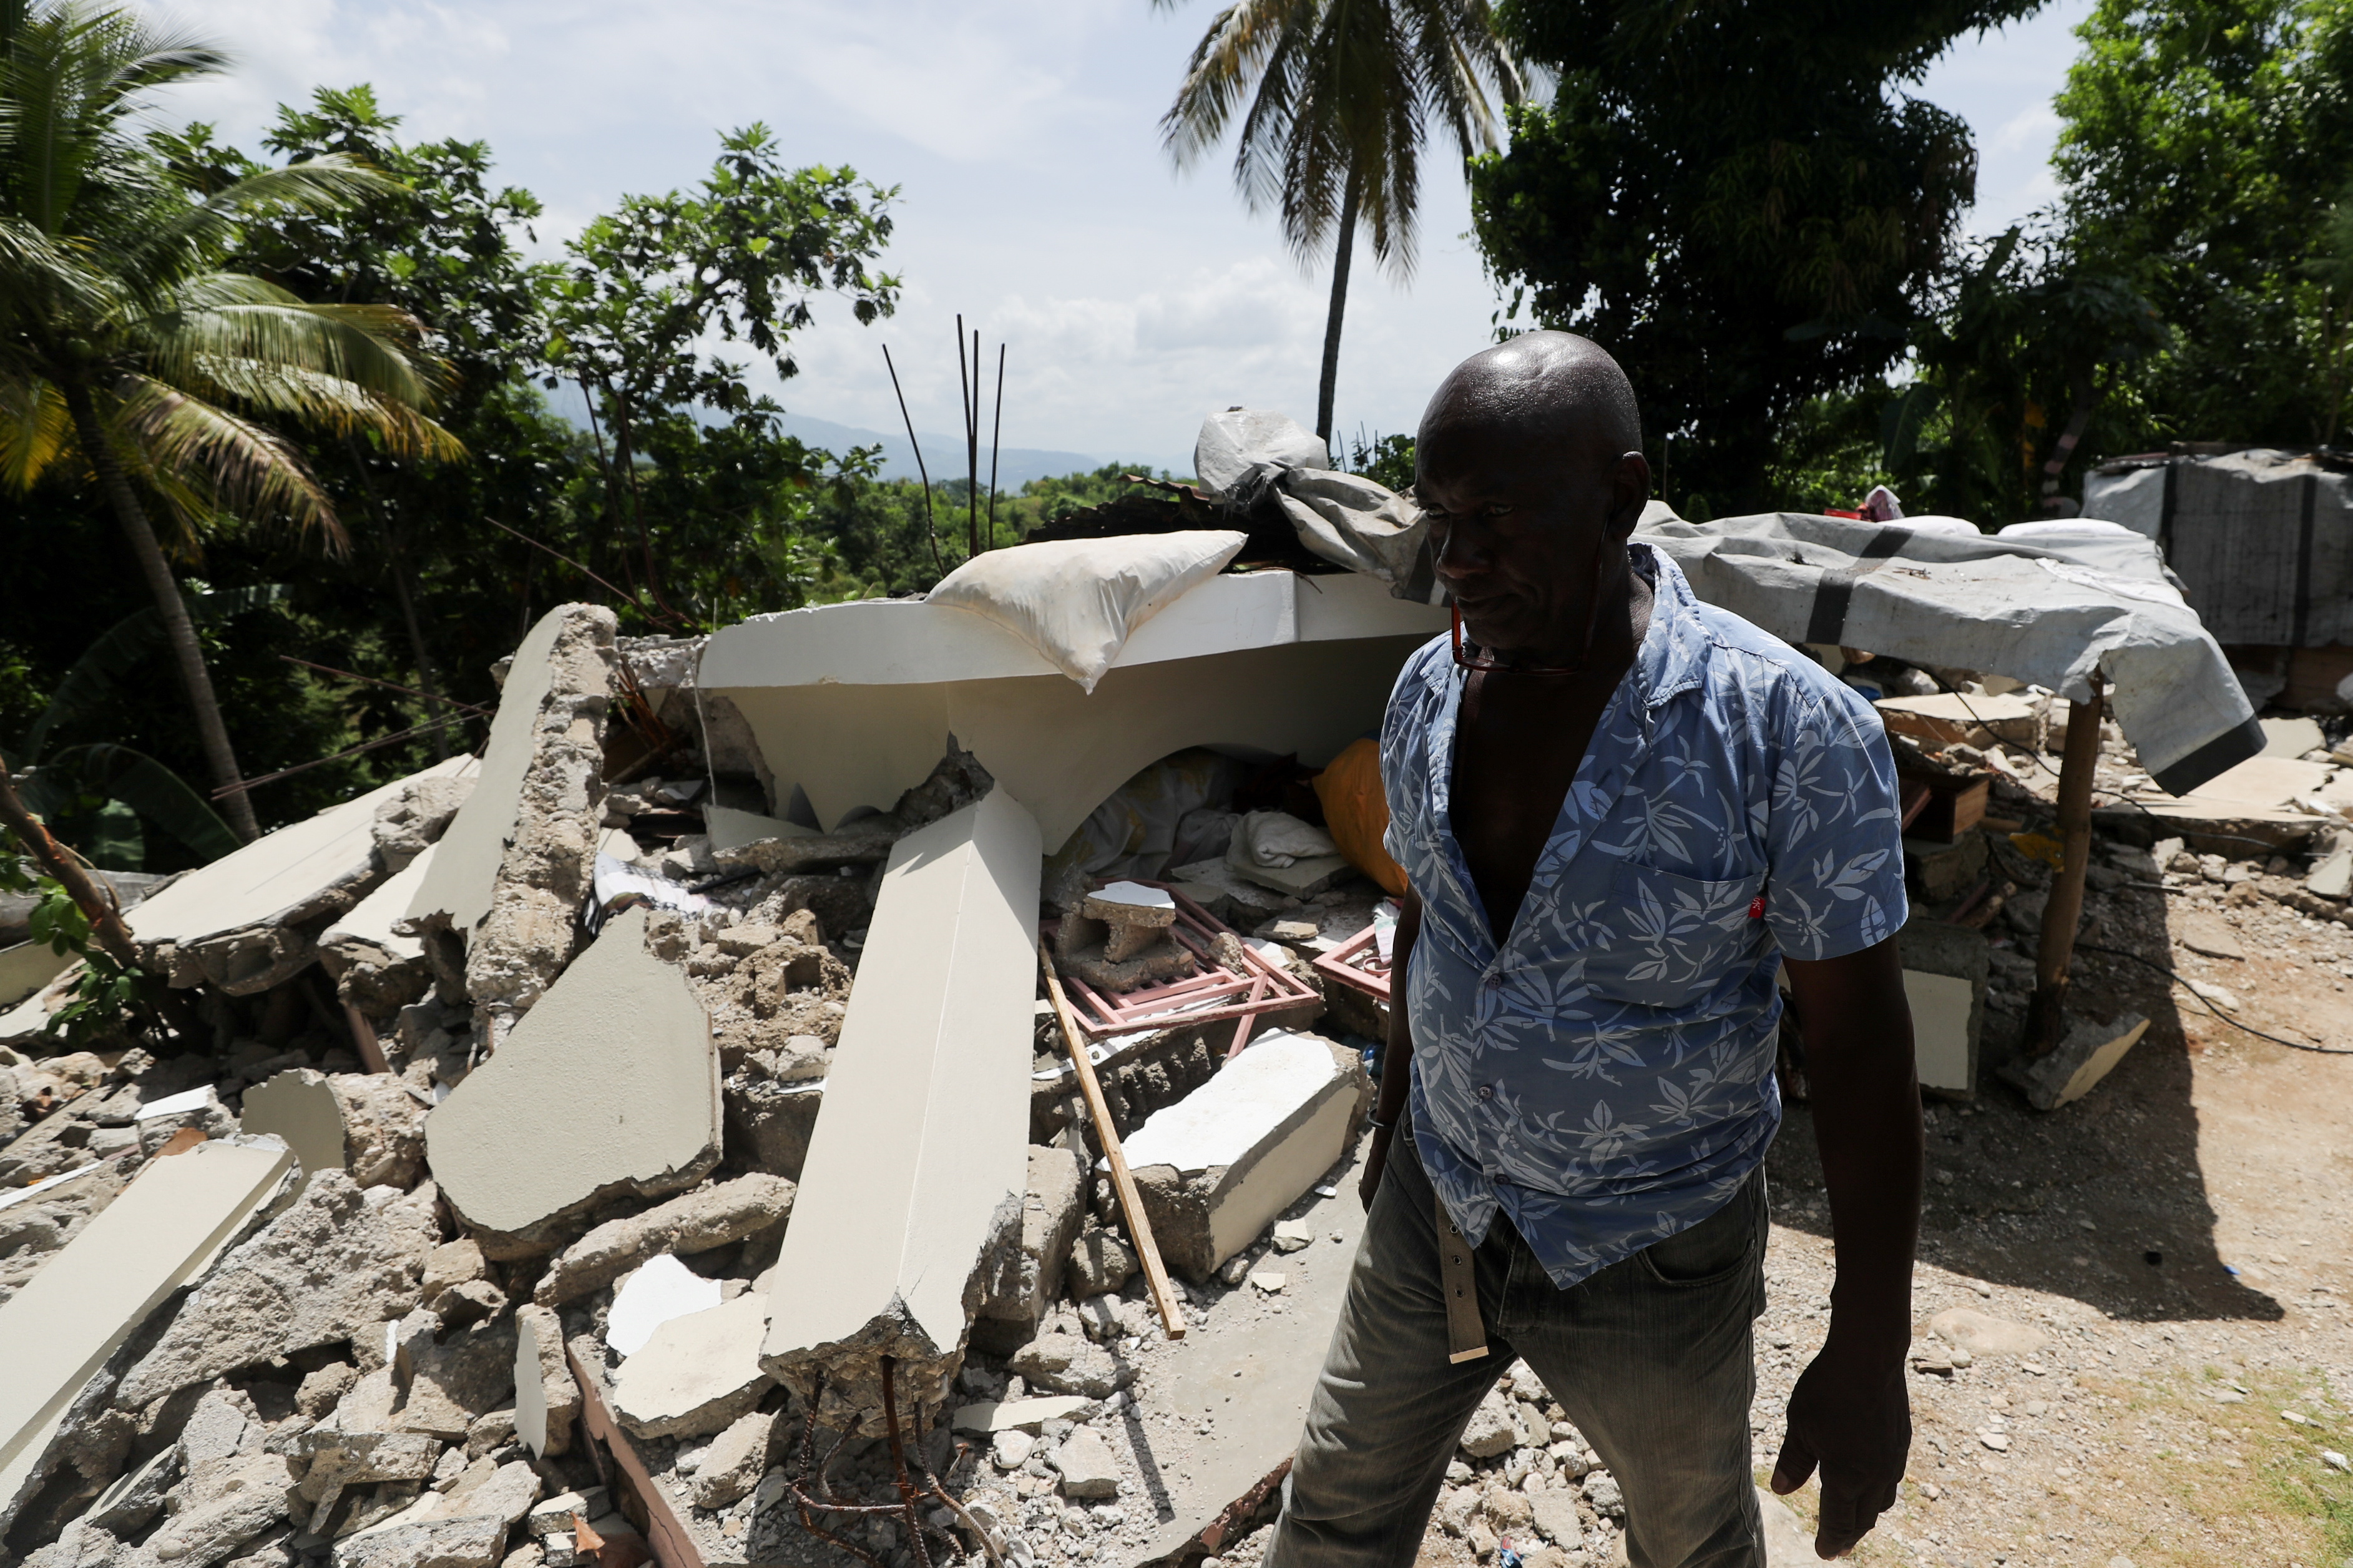 A resident walks among destroyed houses, after the earthquake that took place on August 14th, in Marceline, near Les Cayes, Haiti August 20, 2021. REUTERS/Henry Romero